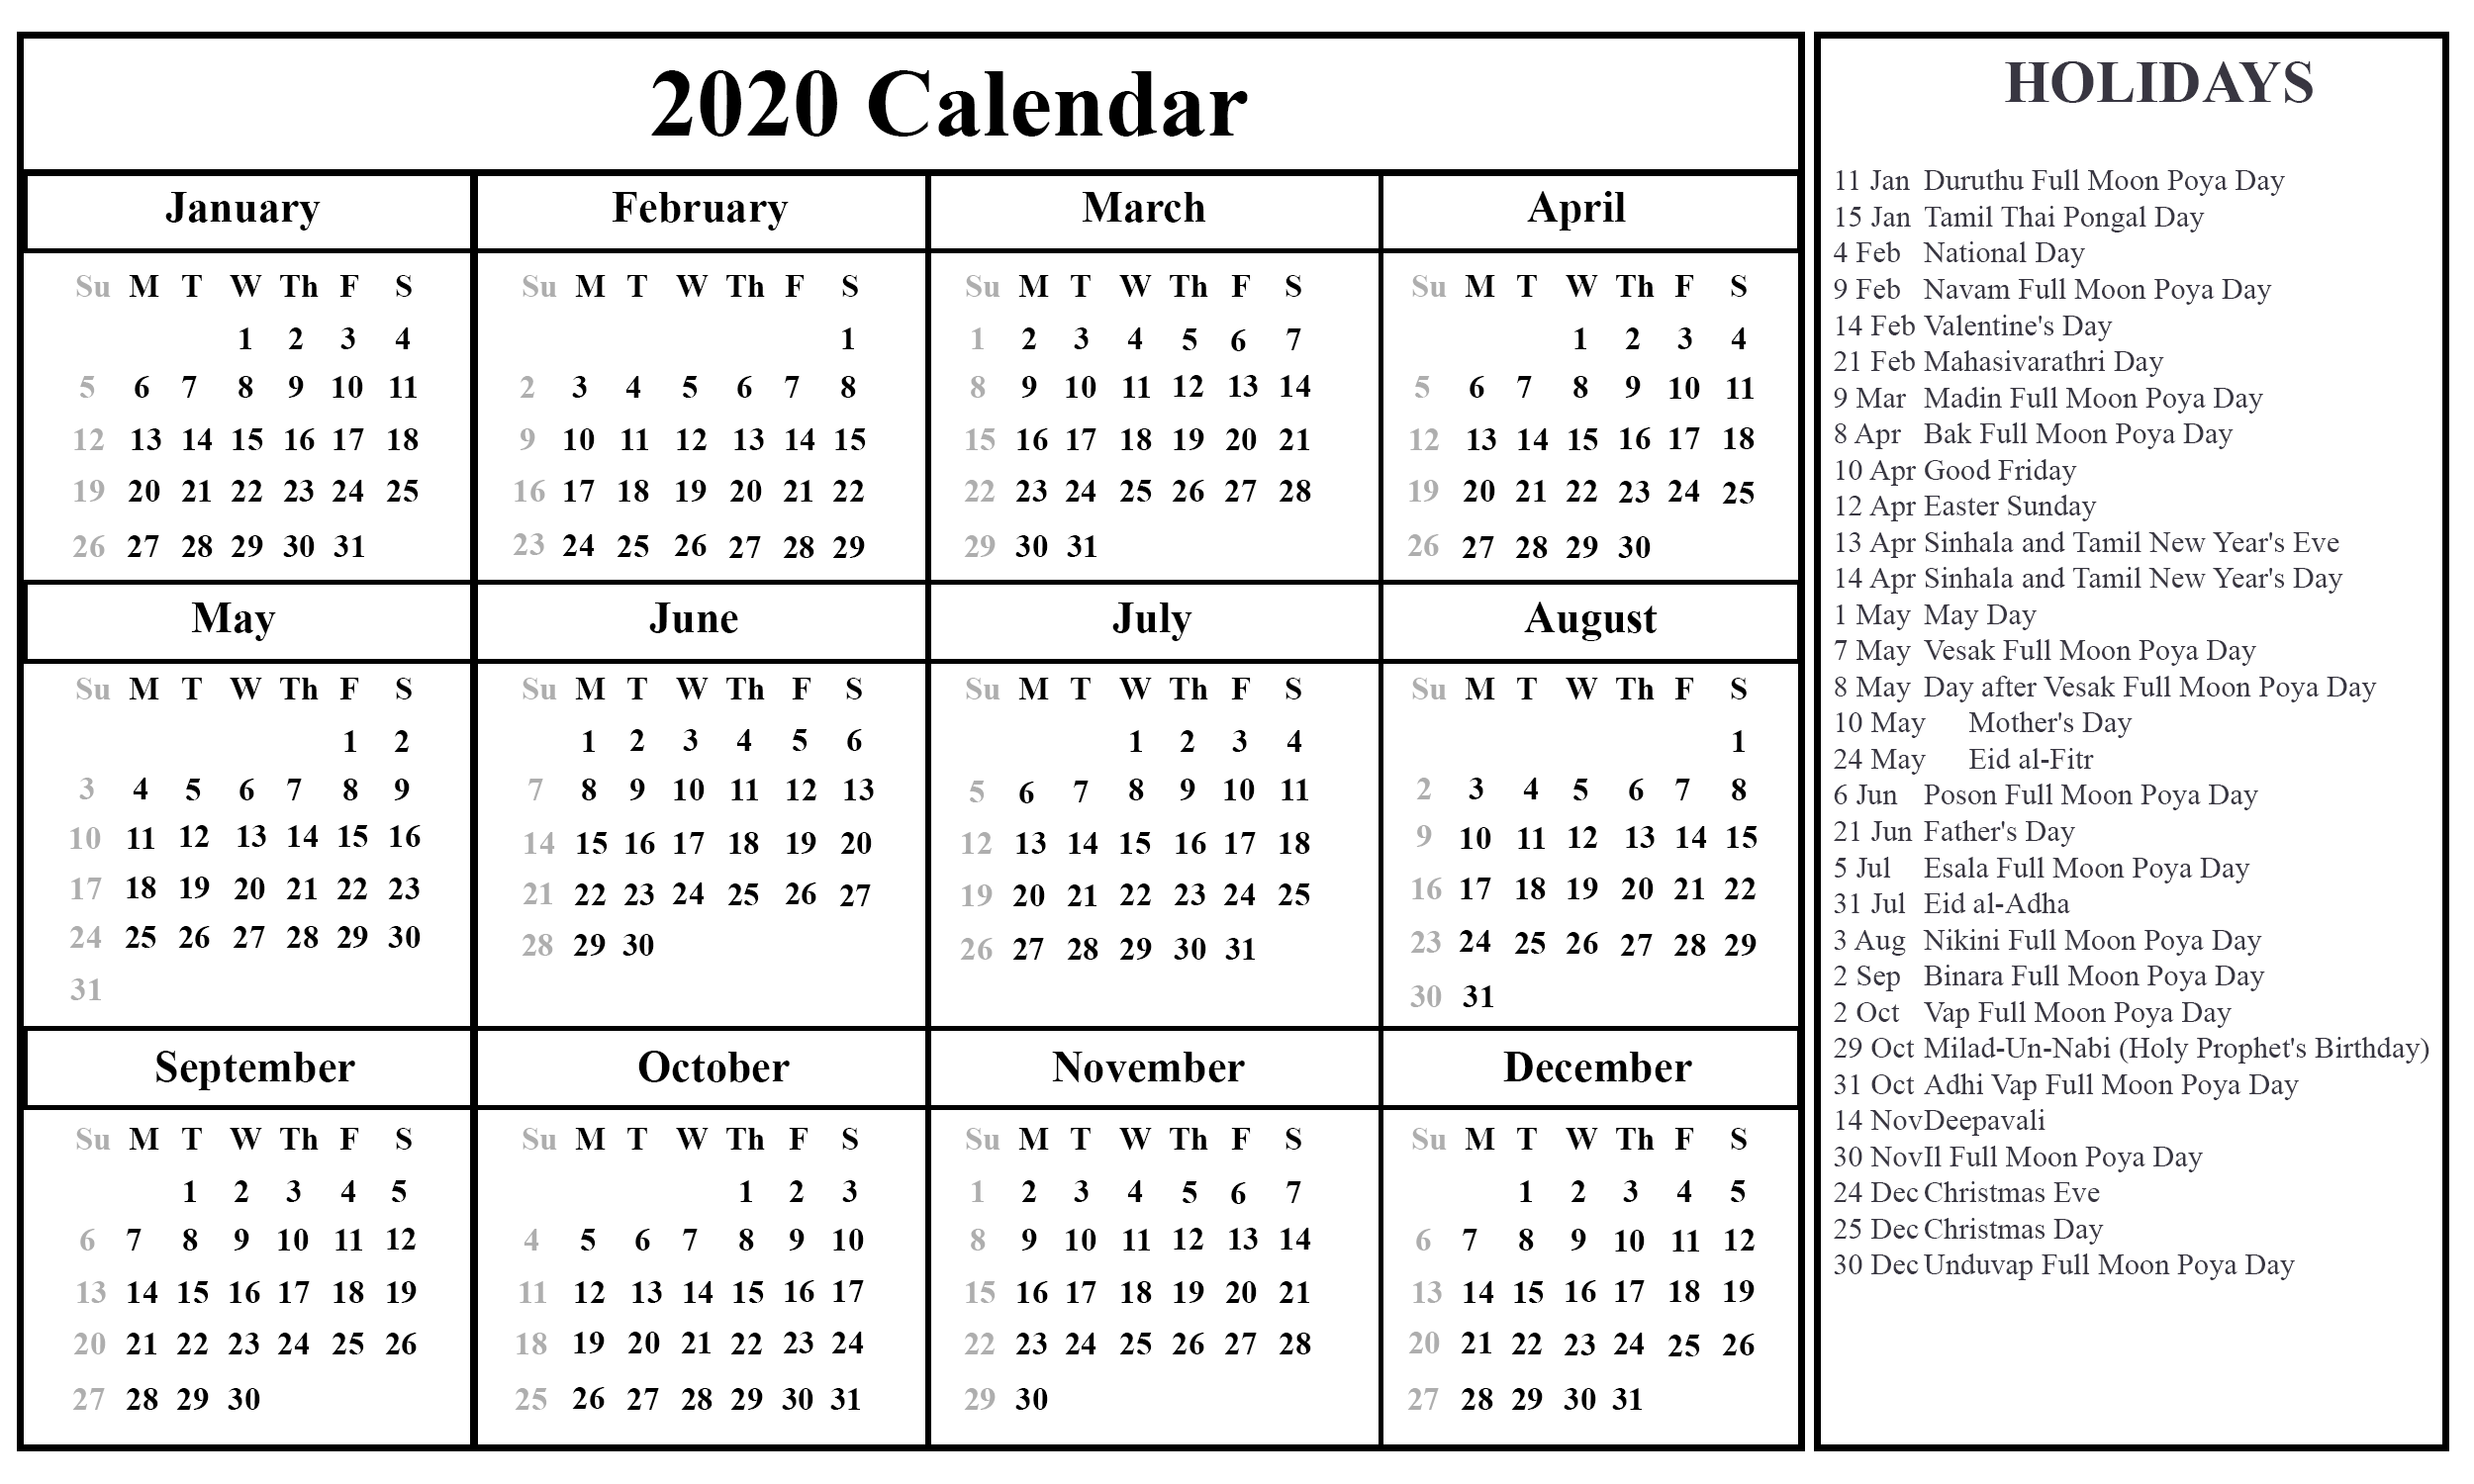 Free Printable Sri Lanka Calendar 2020 with Holidays in PDF